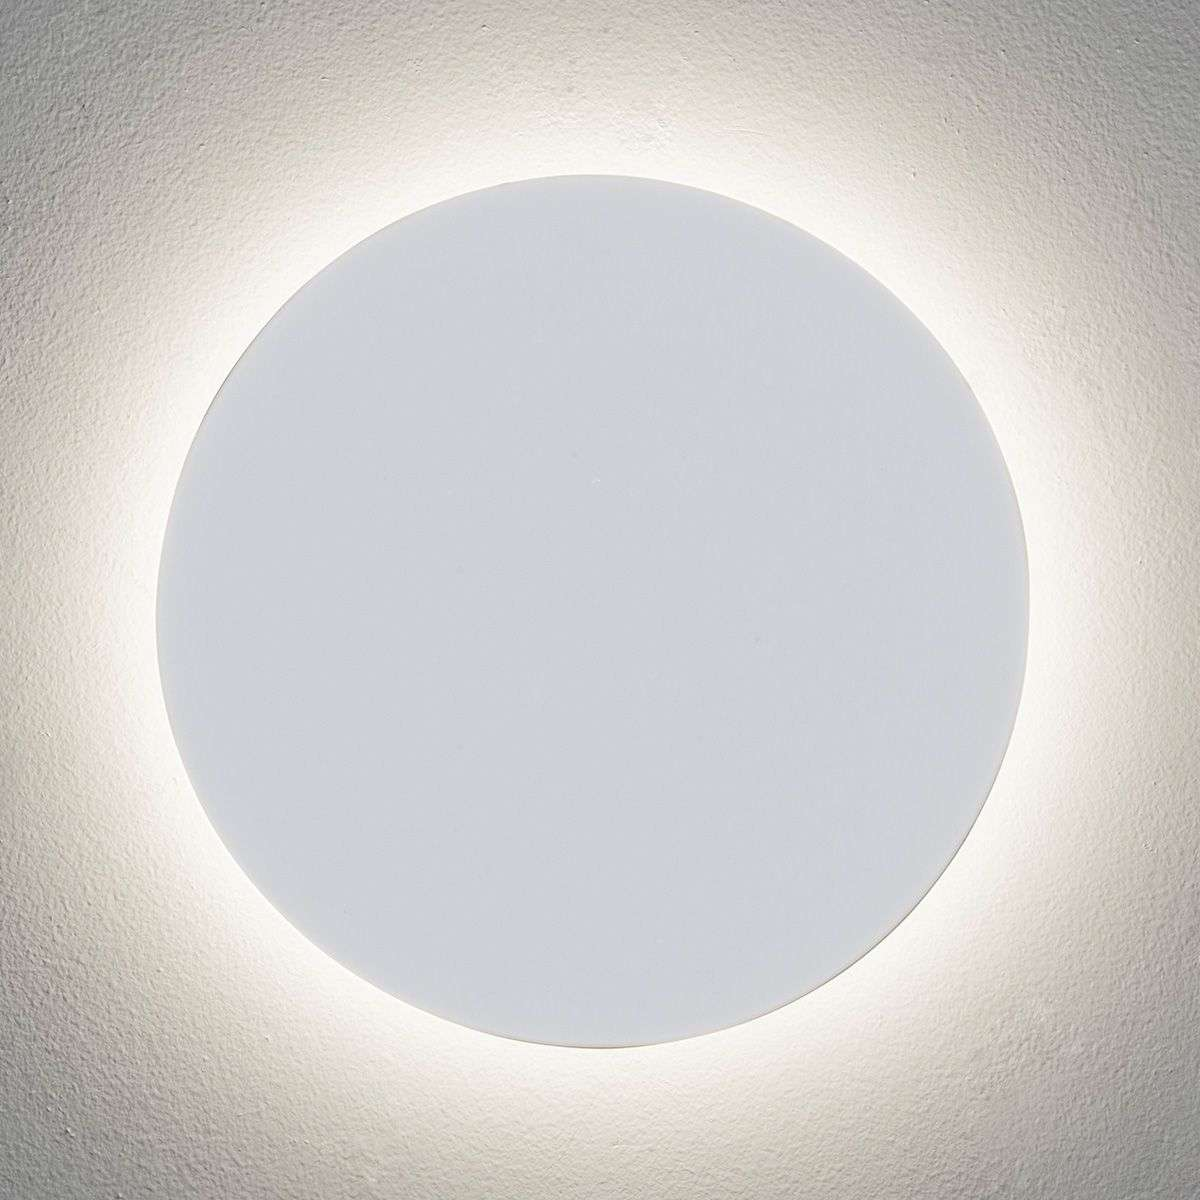 Eclipse round led wall light with fantastic effect lights eclipse round led wall light with fantastic effect aloadofball Images